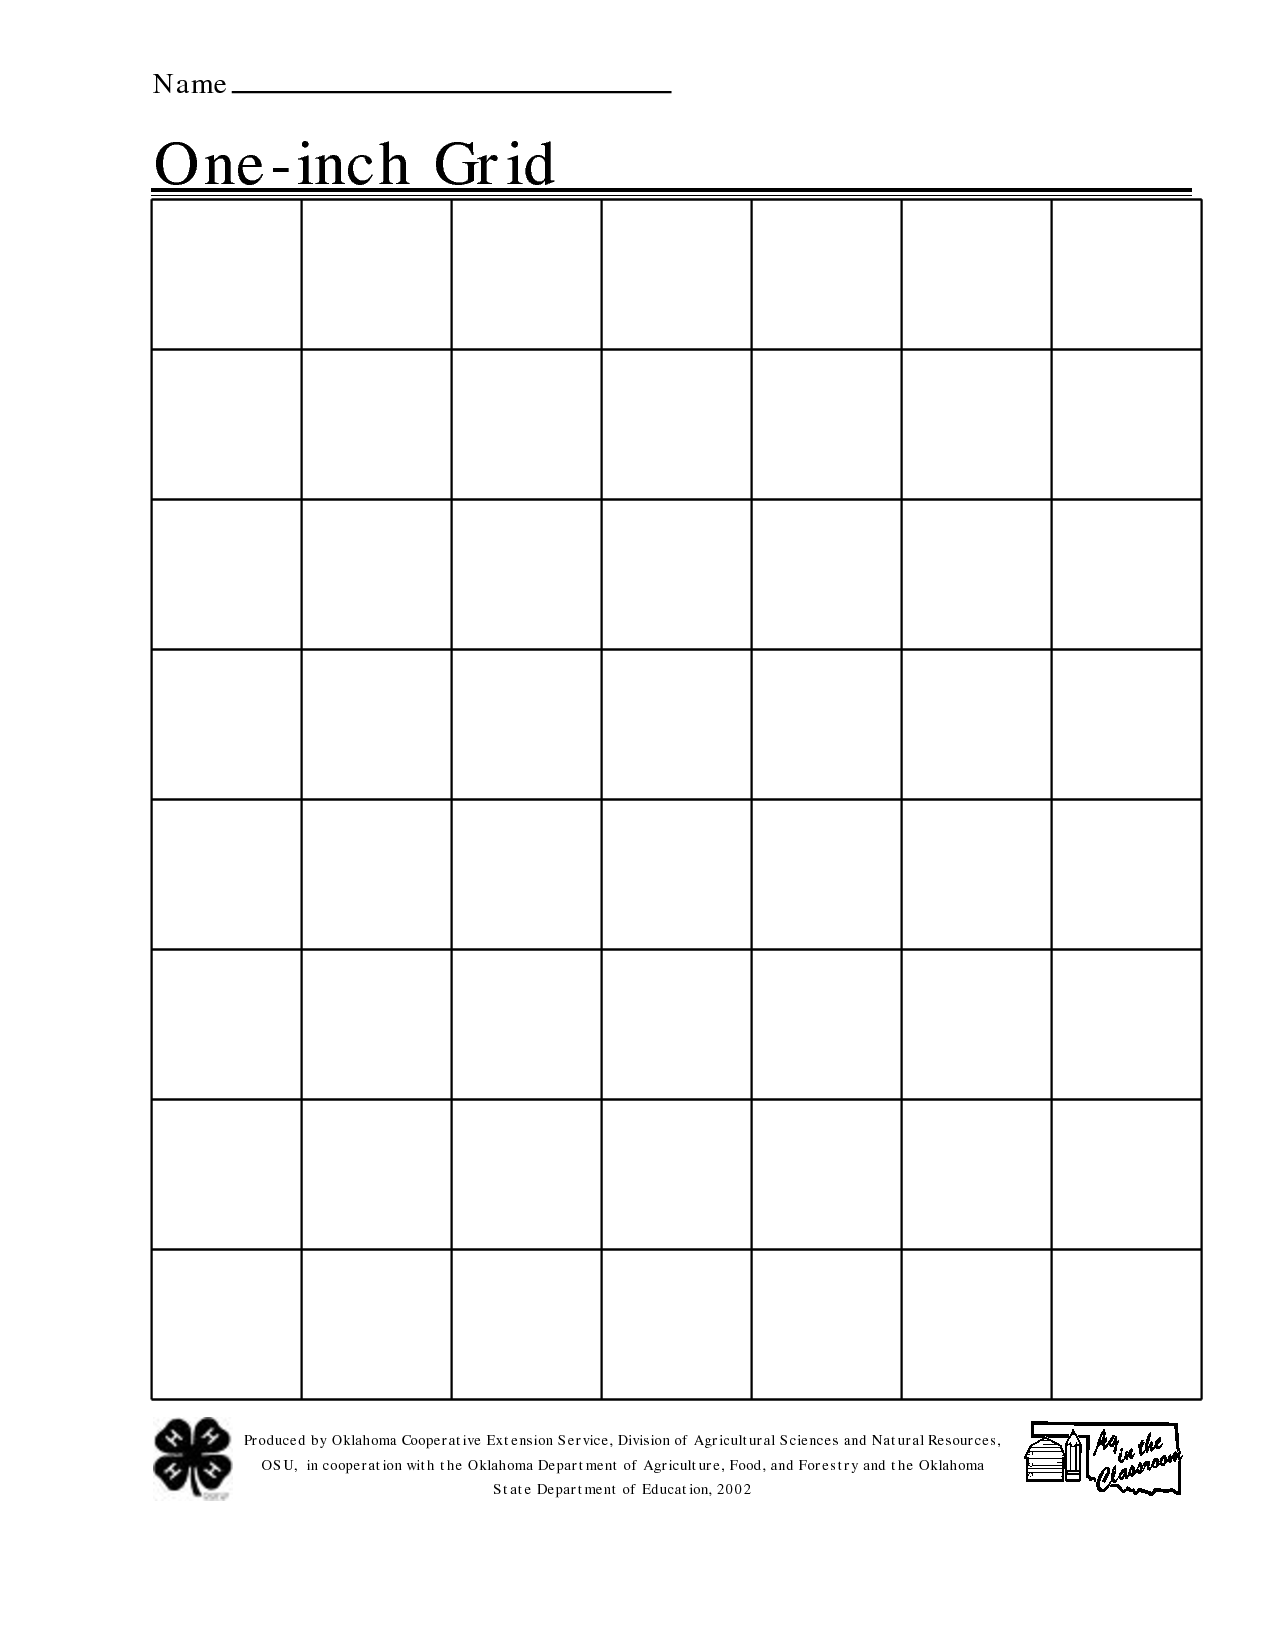 worksheet Grid And Graph It free printable 1 inch grid paper math pinterest and teacher paper